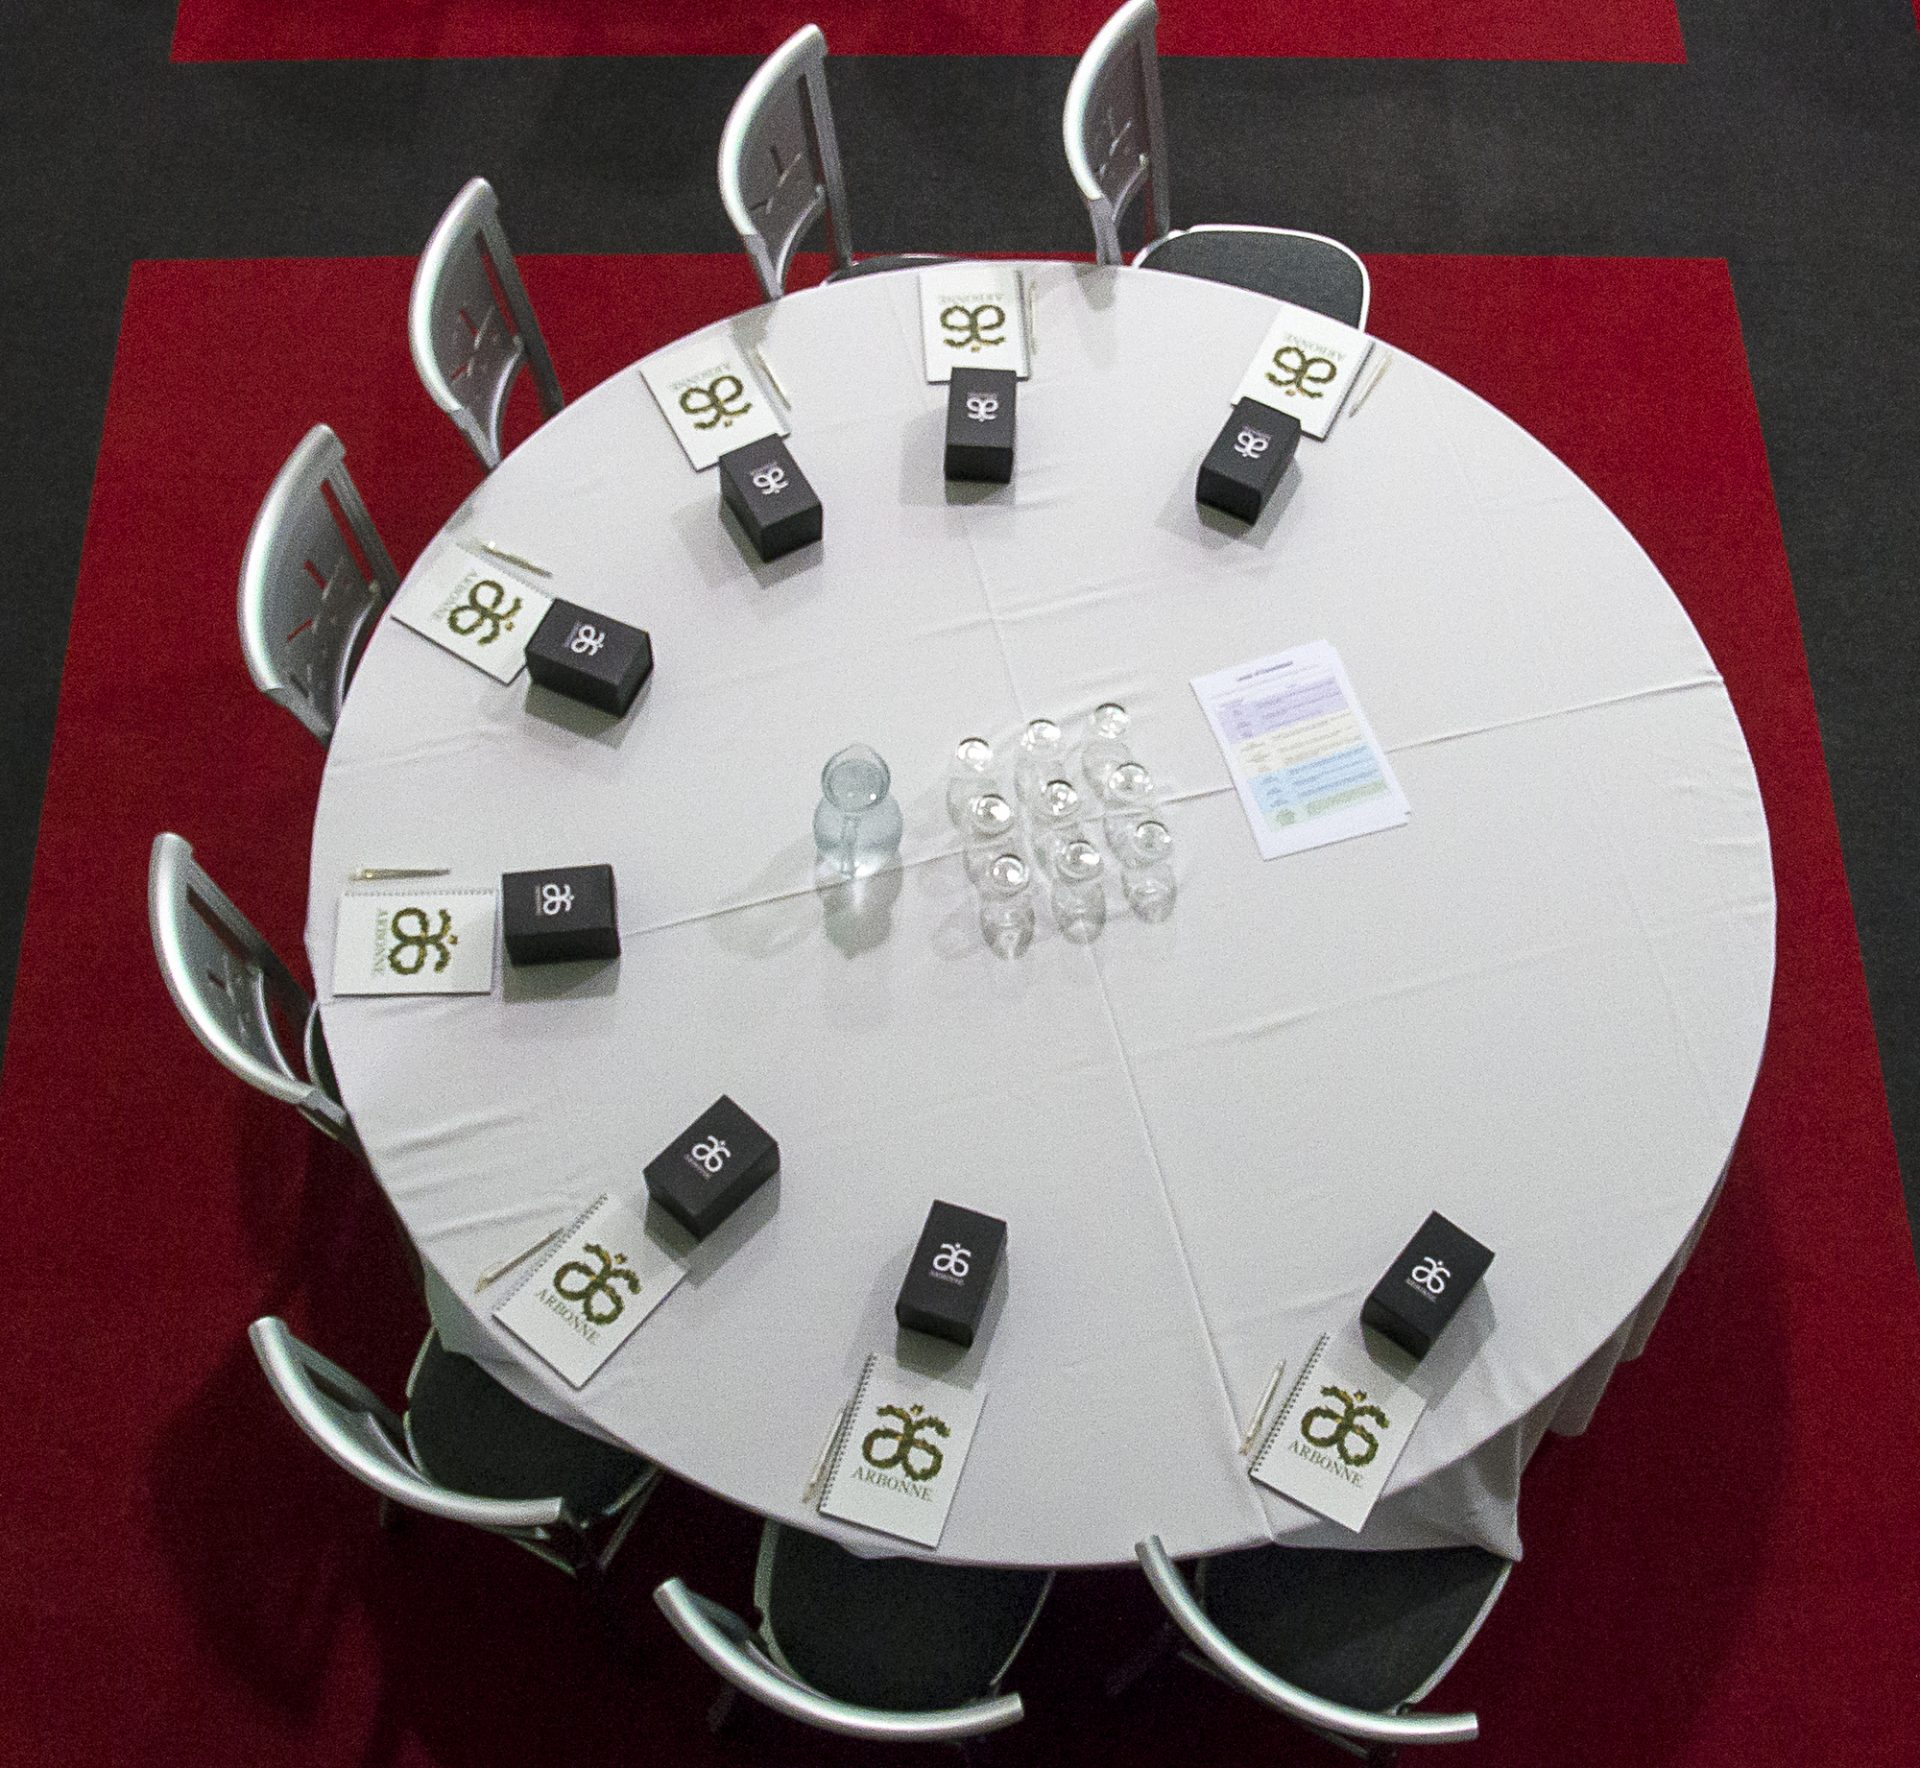 Table layout showing High end detail to make your first corporate event a success.